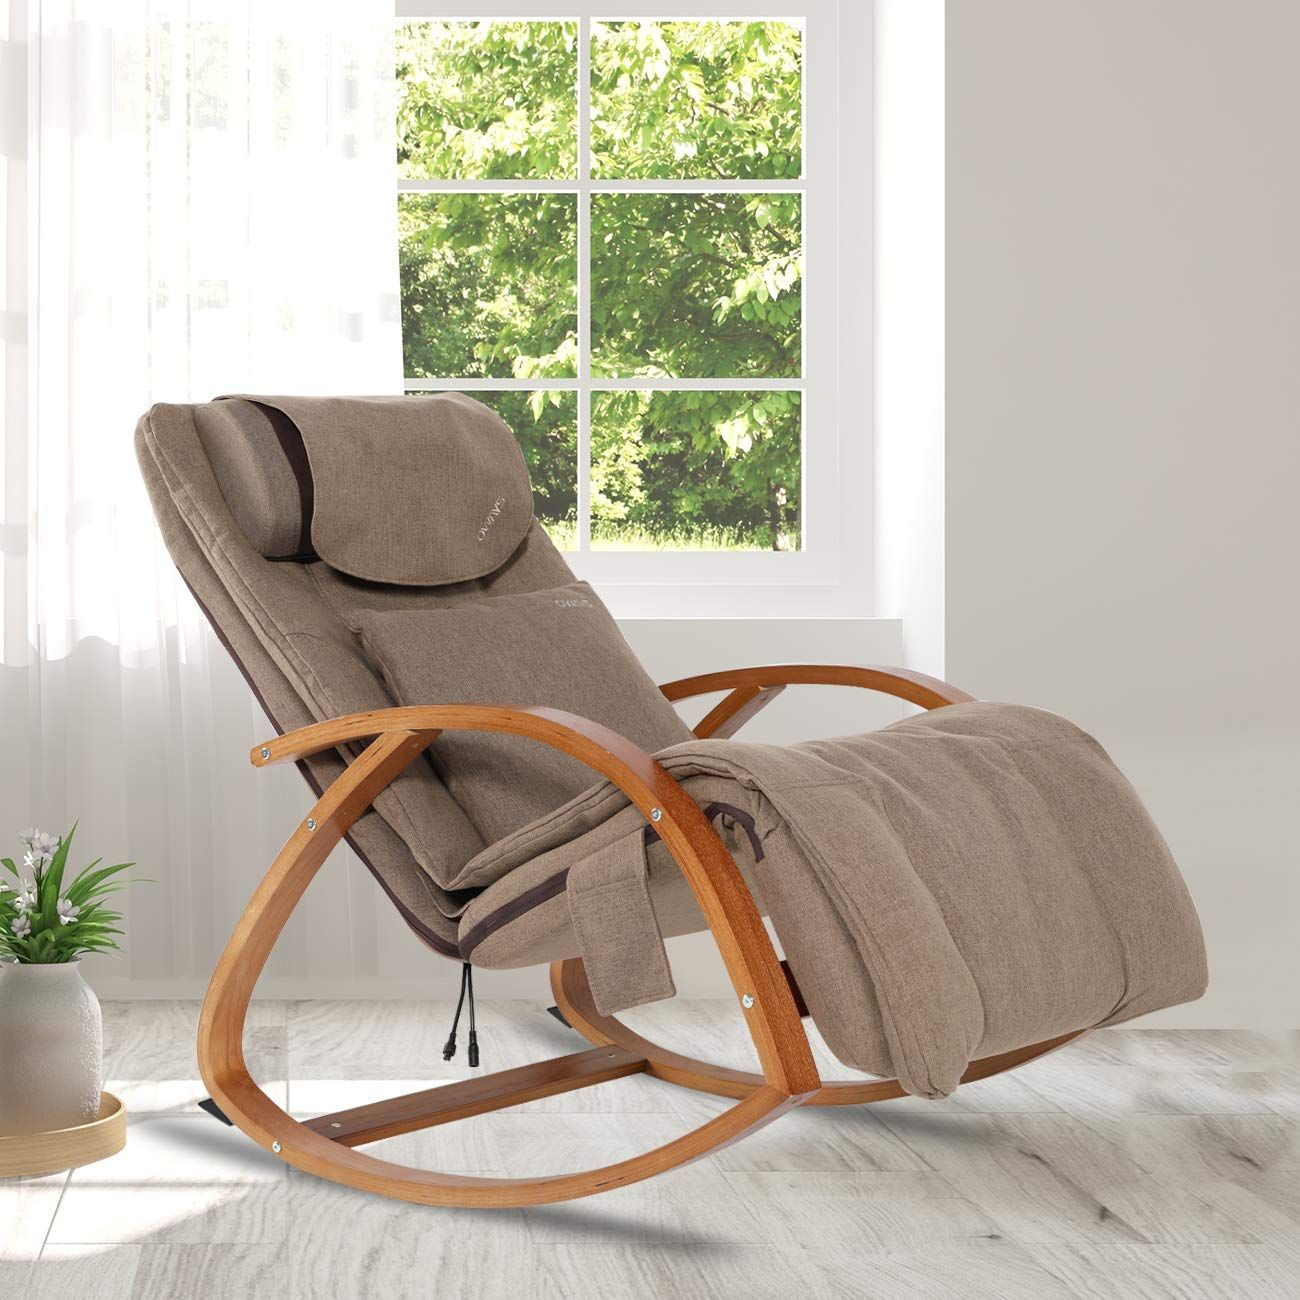 Best 3d recliner massage chair with cushion for full body